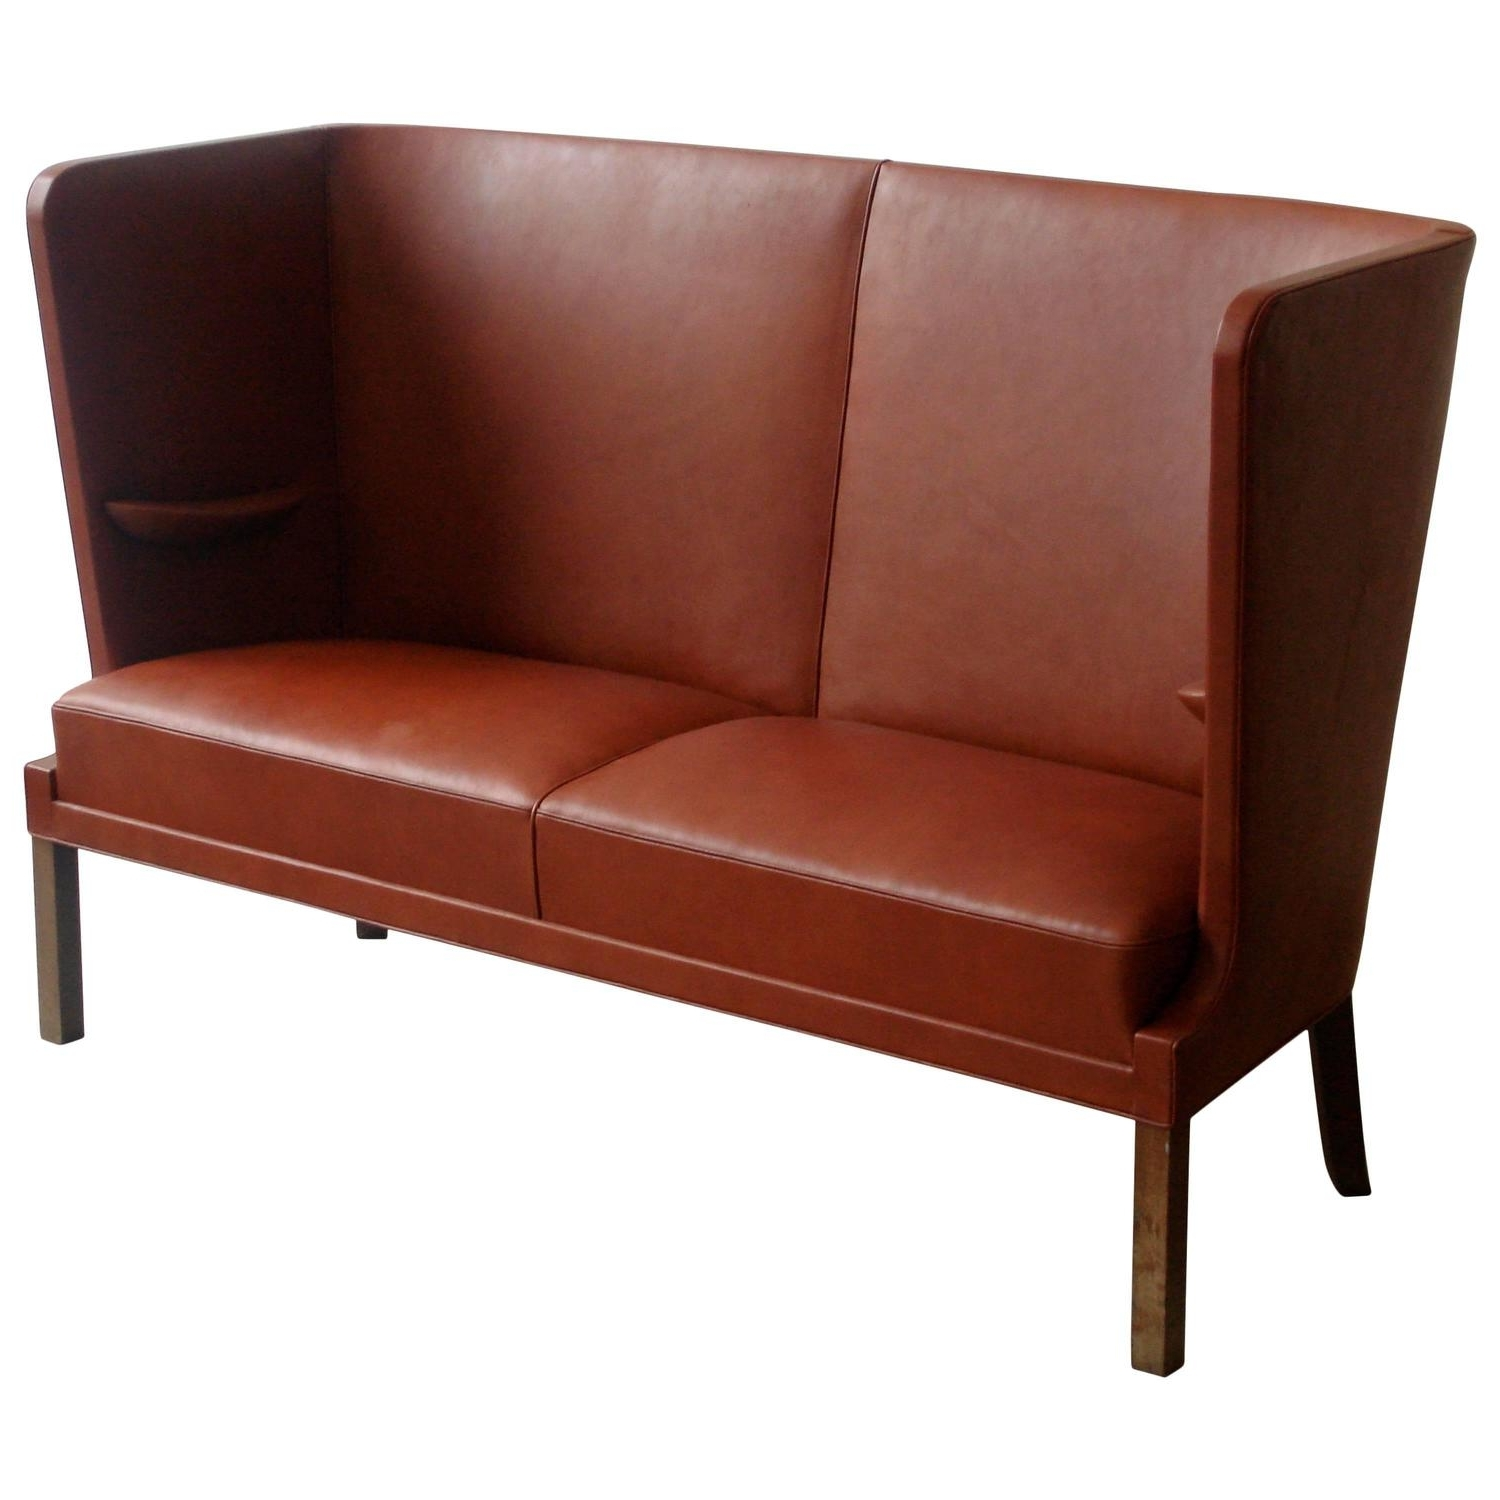 2019 1930S Sofas – 122 For Sale At 1Stdibs Regarding Sofas With High Backs (View 3 of 20)